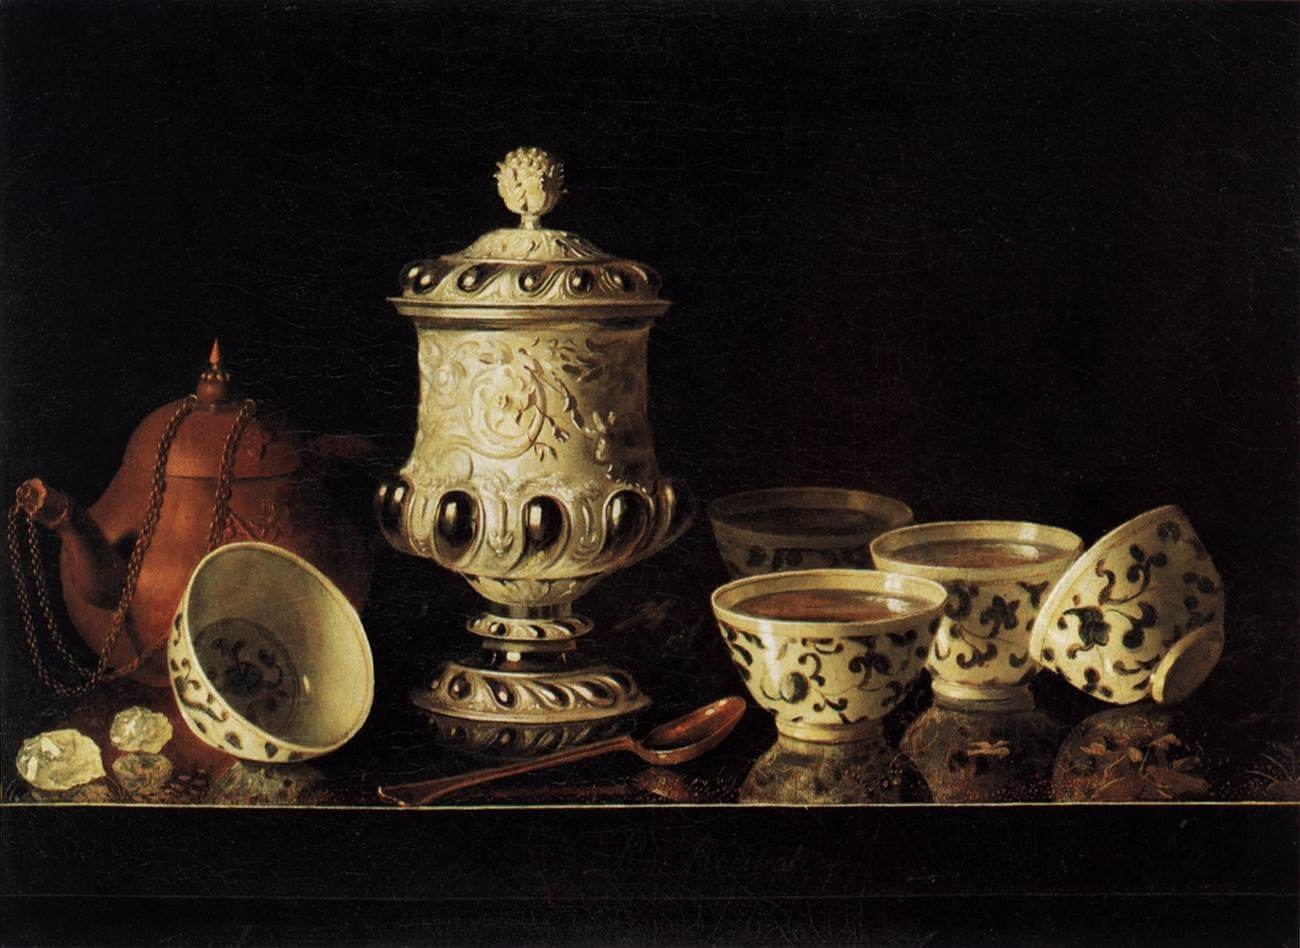 Nomadic Objects. Material Circulations, Appropriations and the Formations of Identities 16th-18th c